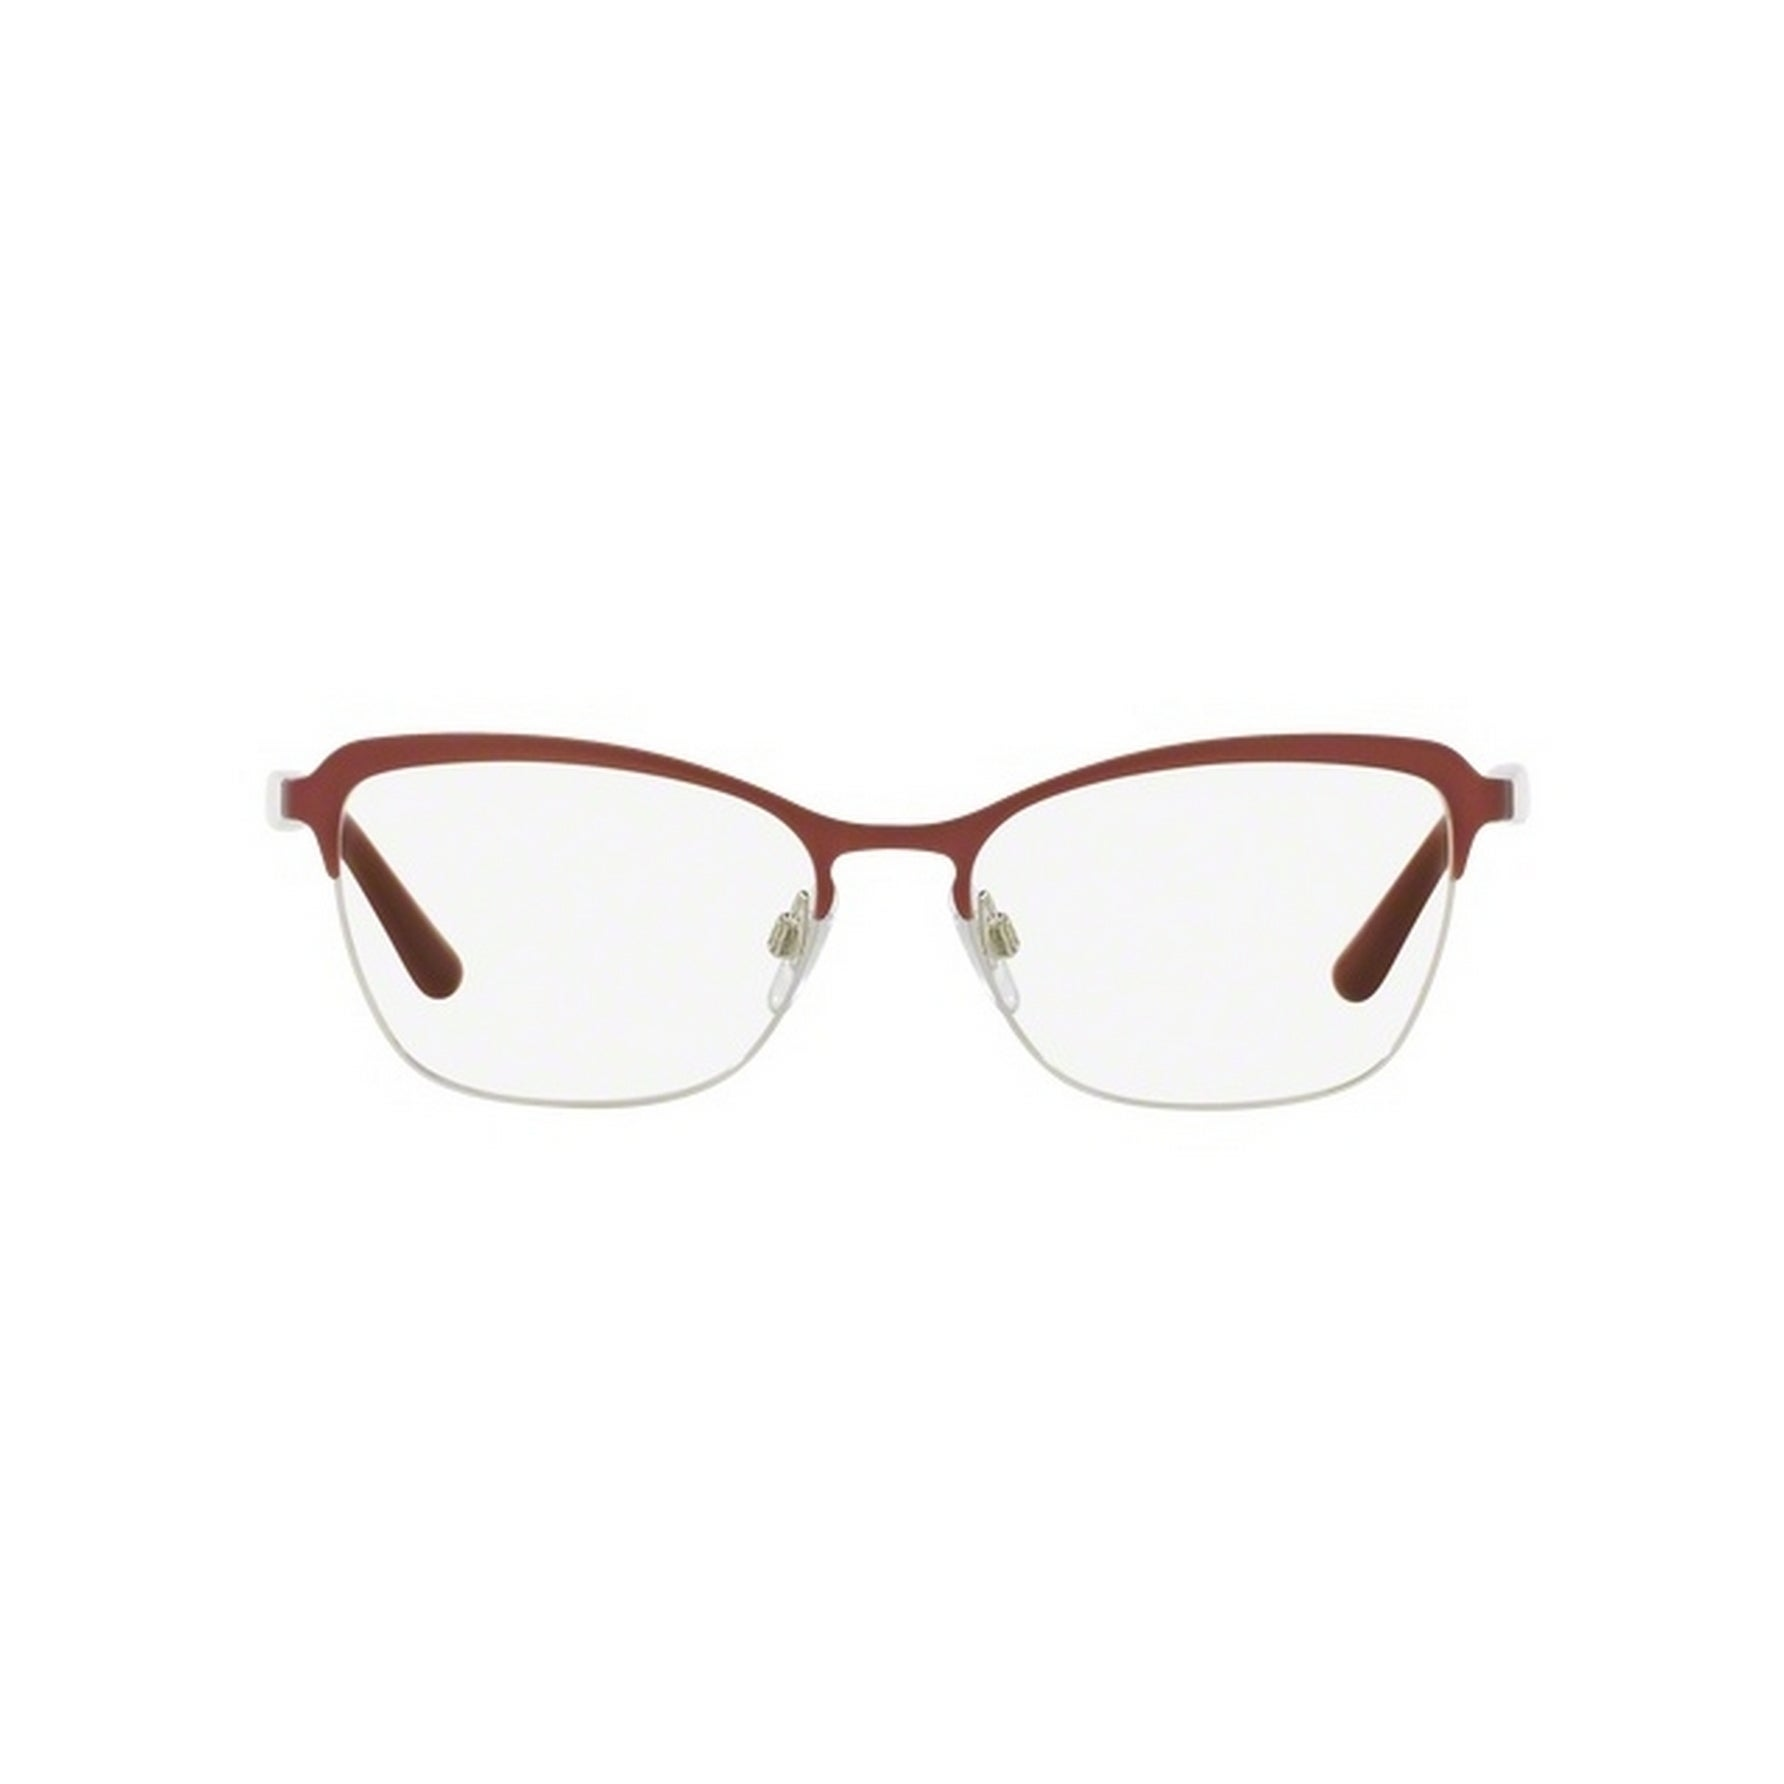 083ef52f3dc5 Shop Dolce   Gabbana Women s DG1286 1303 53 Cateye Metal Red Clear  Eyeglasses - Free Shipping Today - Overstock - 14799476